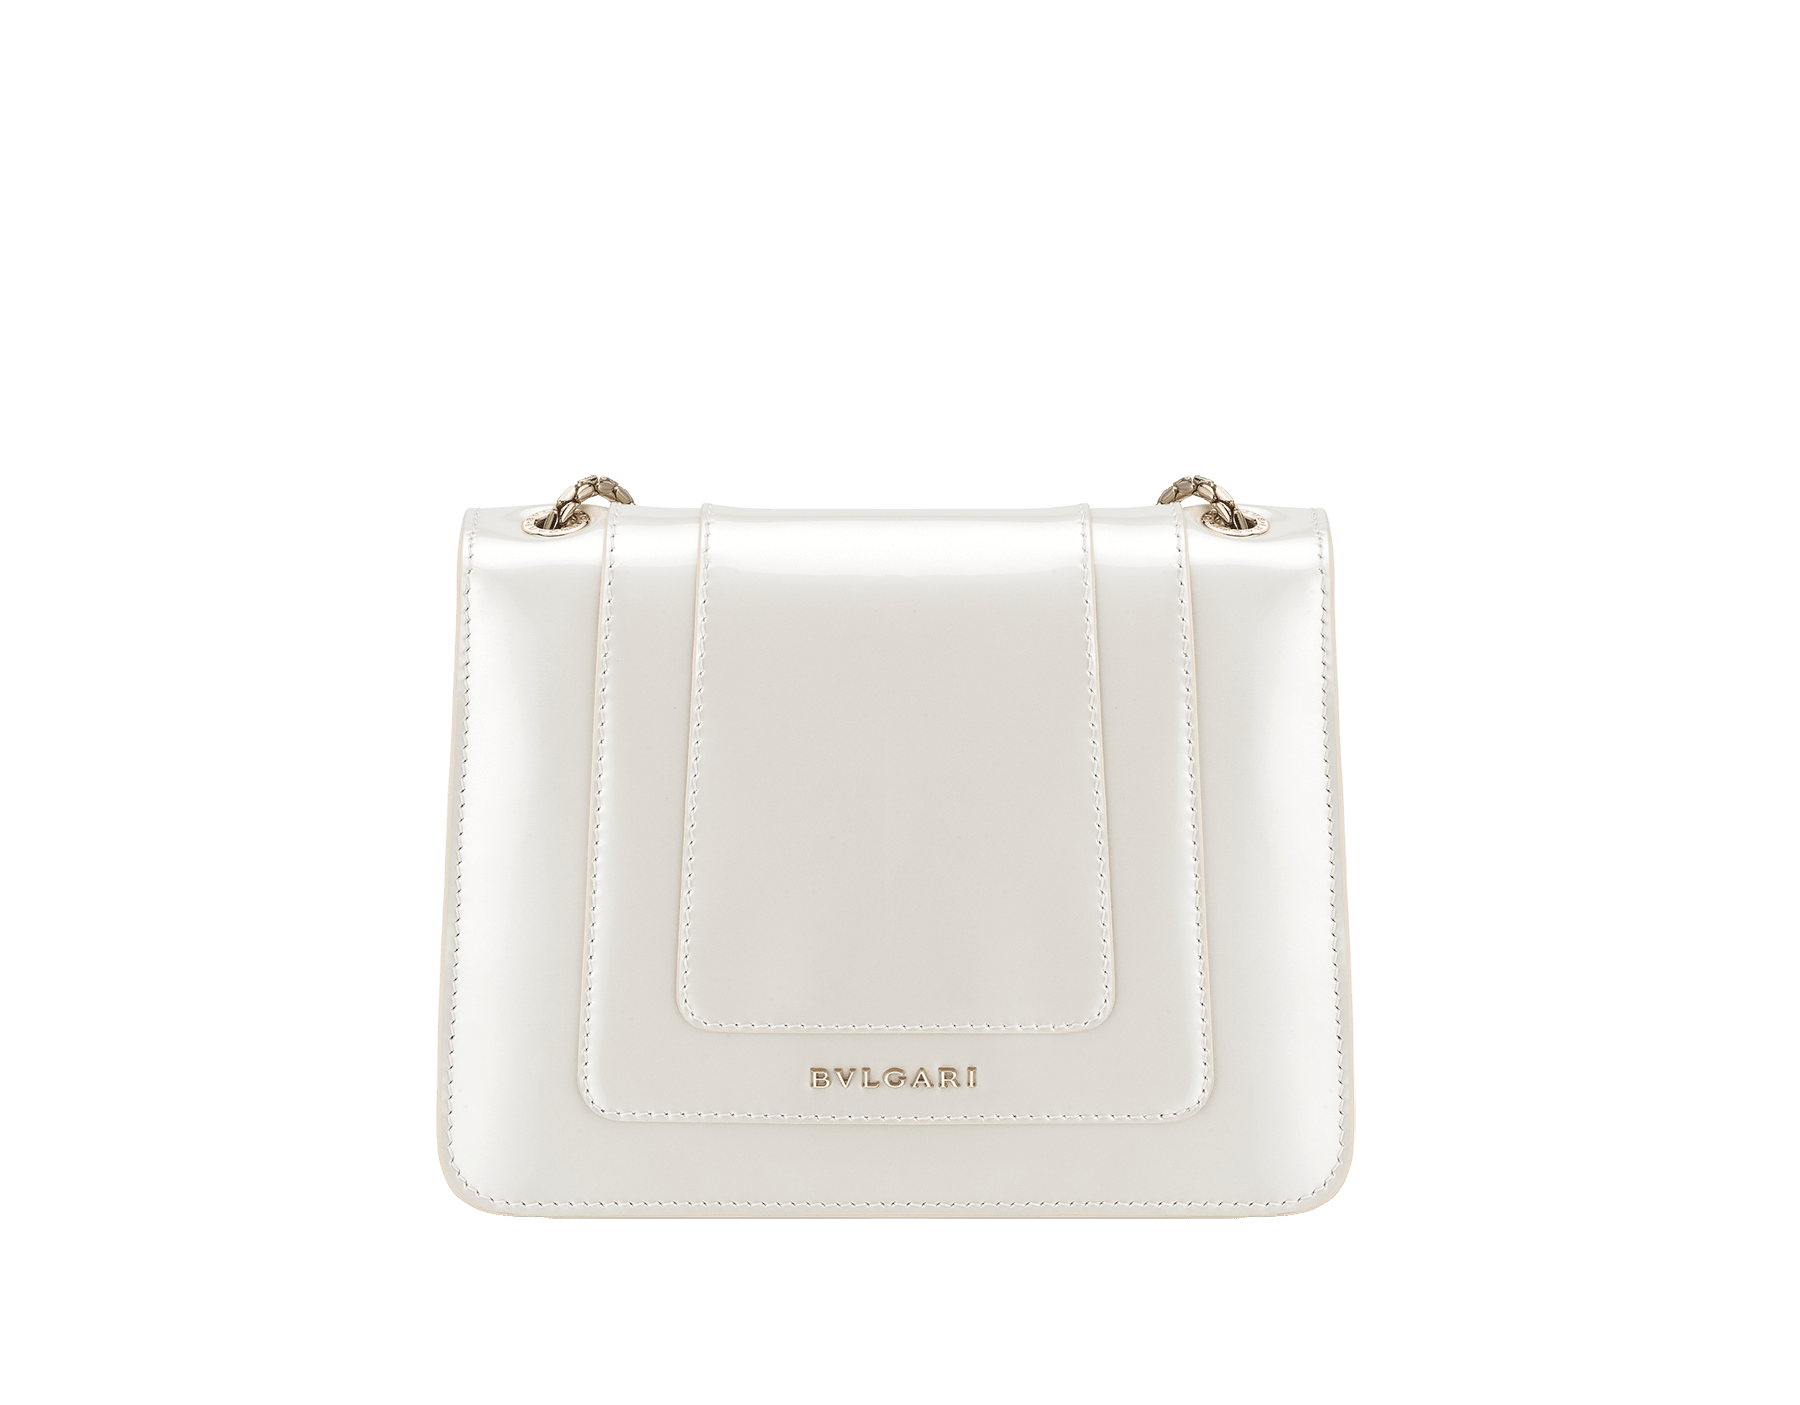 """Serpenti Forever"" crossbody bag in white agate calf leather with a varnished and pearled effect. Iconic snakehead closure in light gold plated brass enriched with black and pearled white agate enamel, and black onyx eyes 289769 image 3"